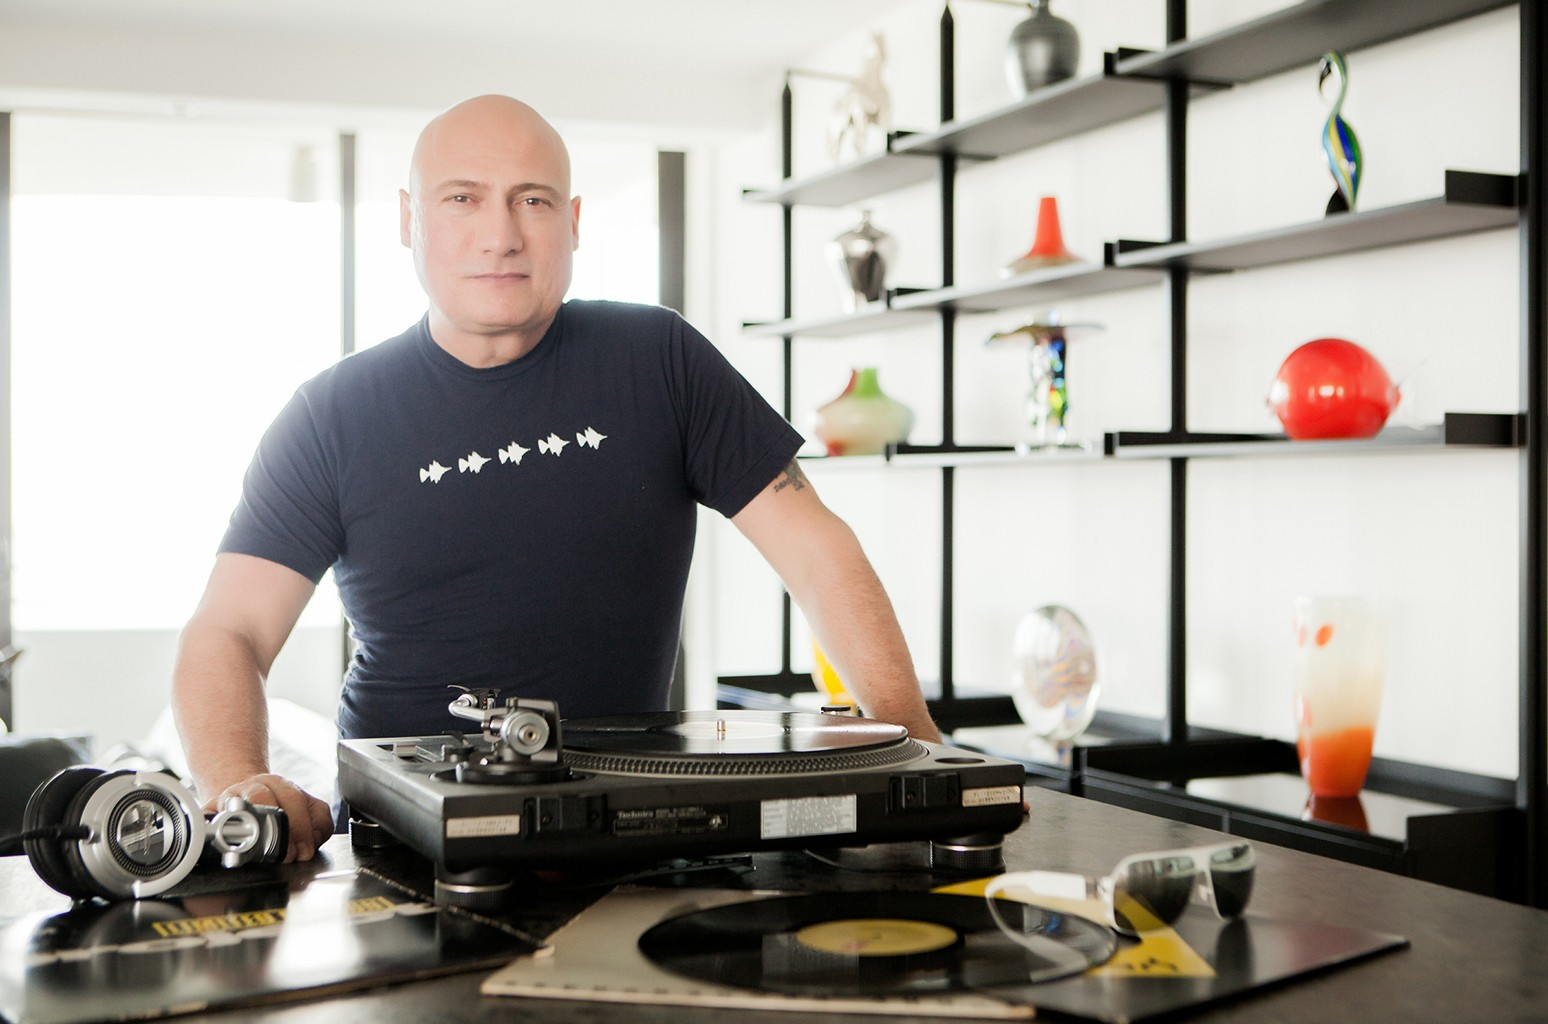 20 Questions With Danny Tenaglia: The Dance Legend on Paradise Garage, Turning 60 & Life Off the Road